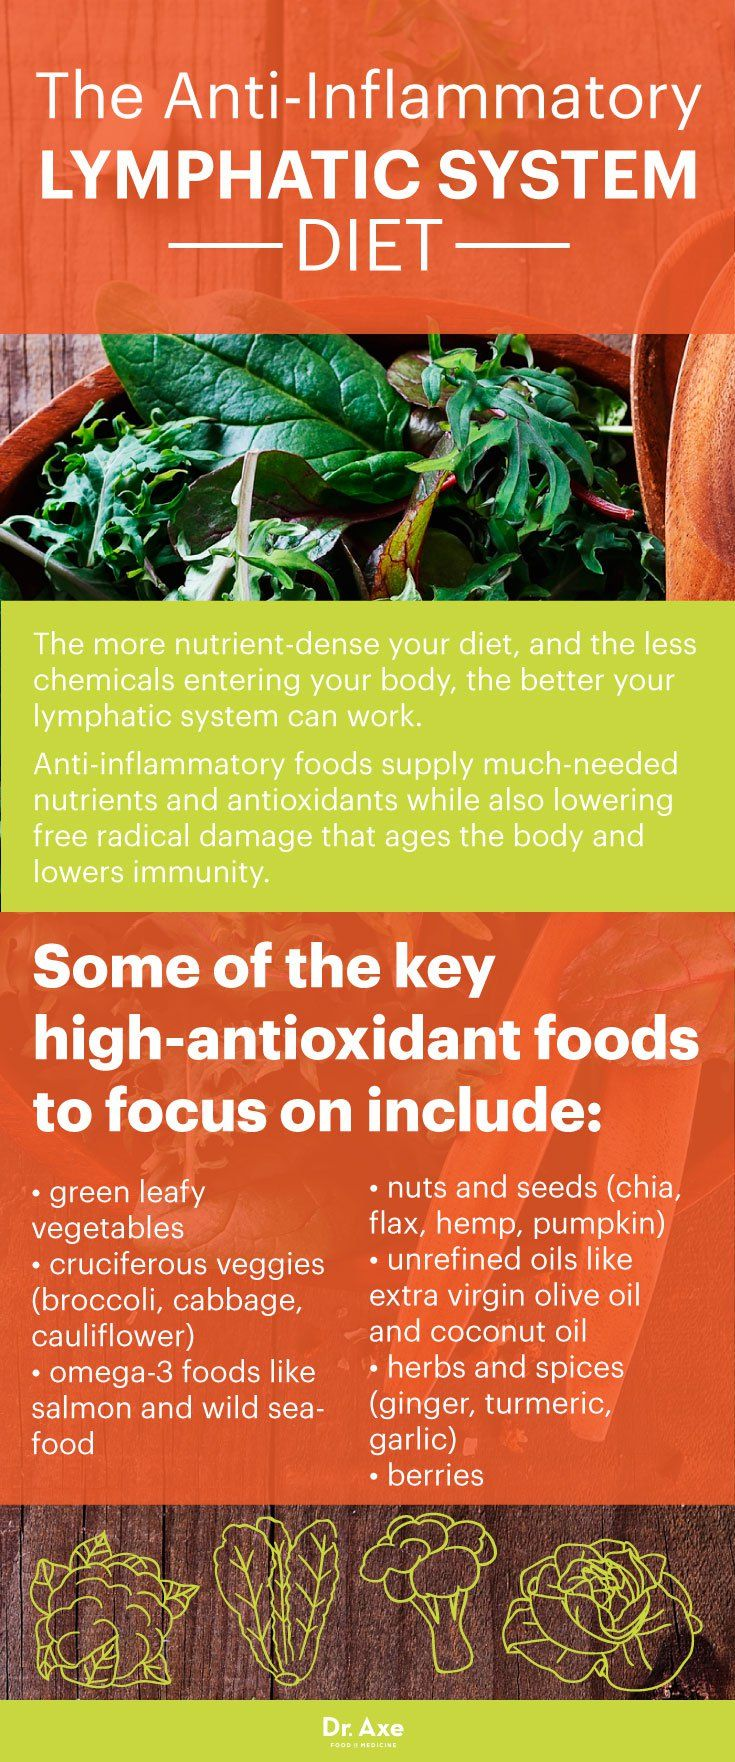 Lymphatic system diet - Dr. Axe